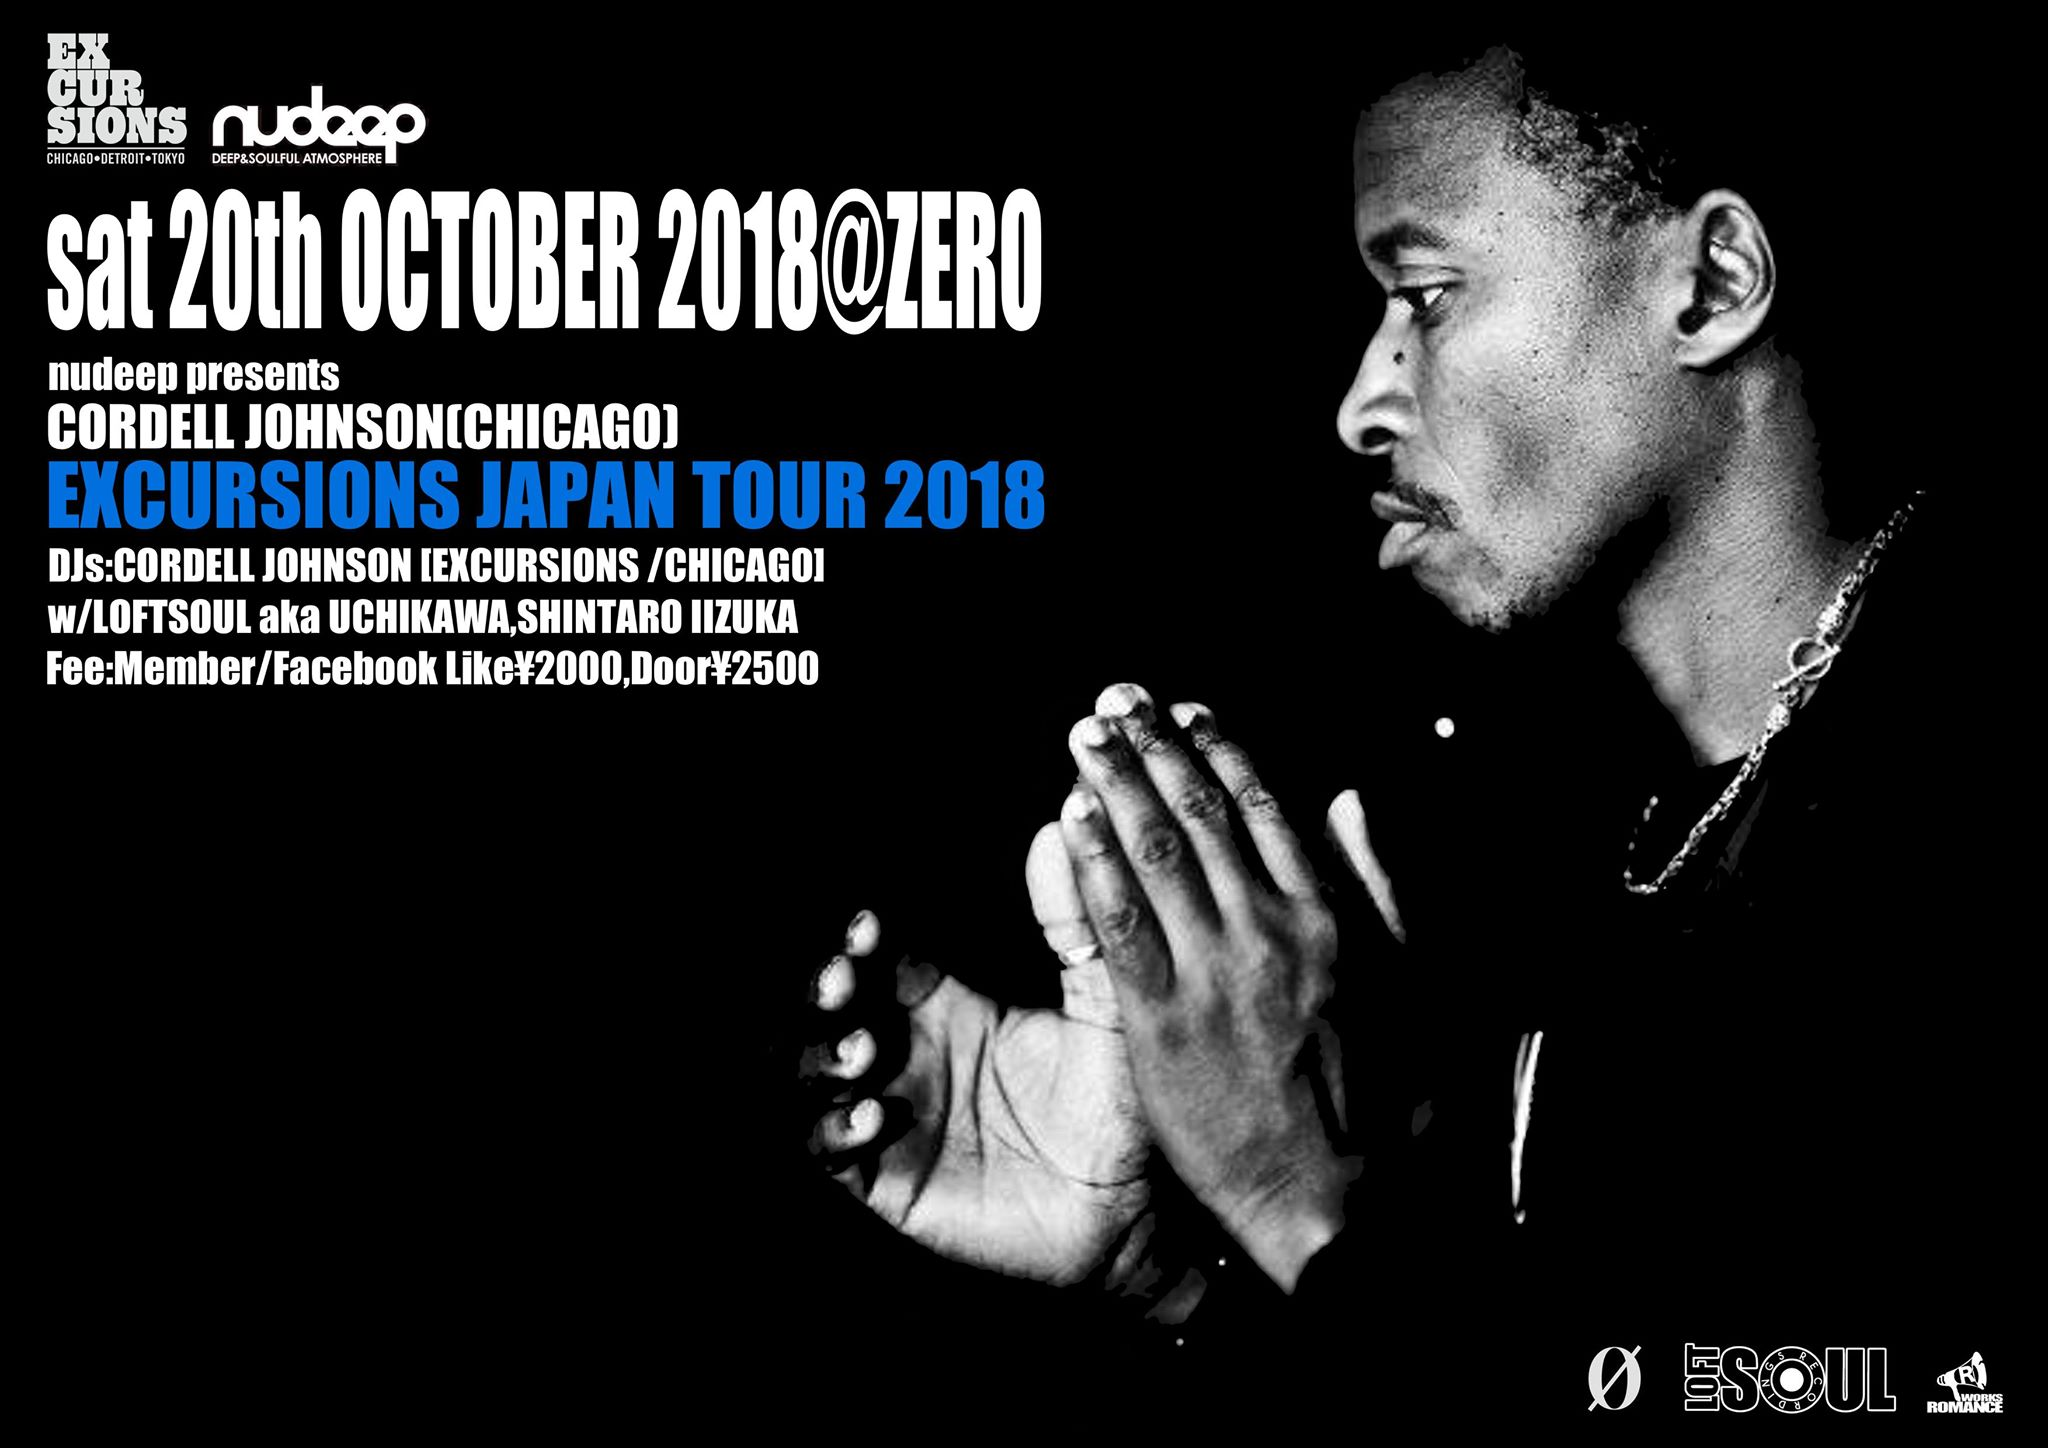 nudeep presents CORDELL JOHNSON(CHICAGO) EXCURSIONS JAPAN TOUR 2018